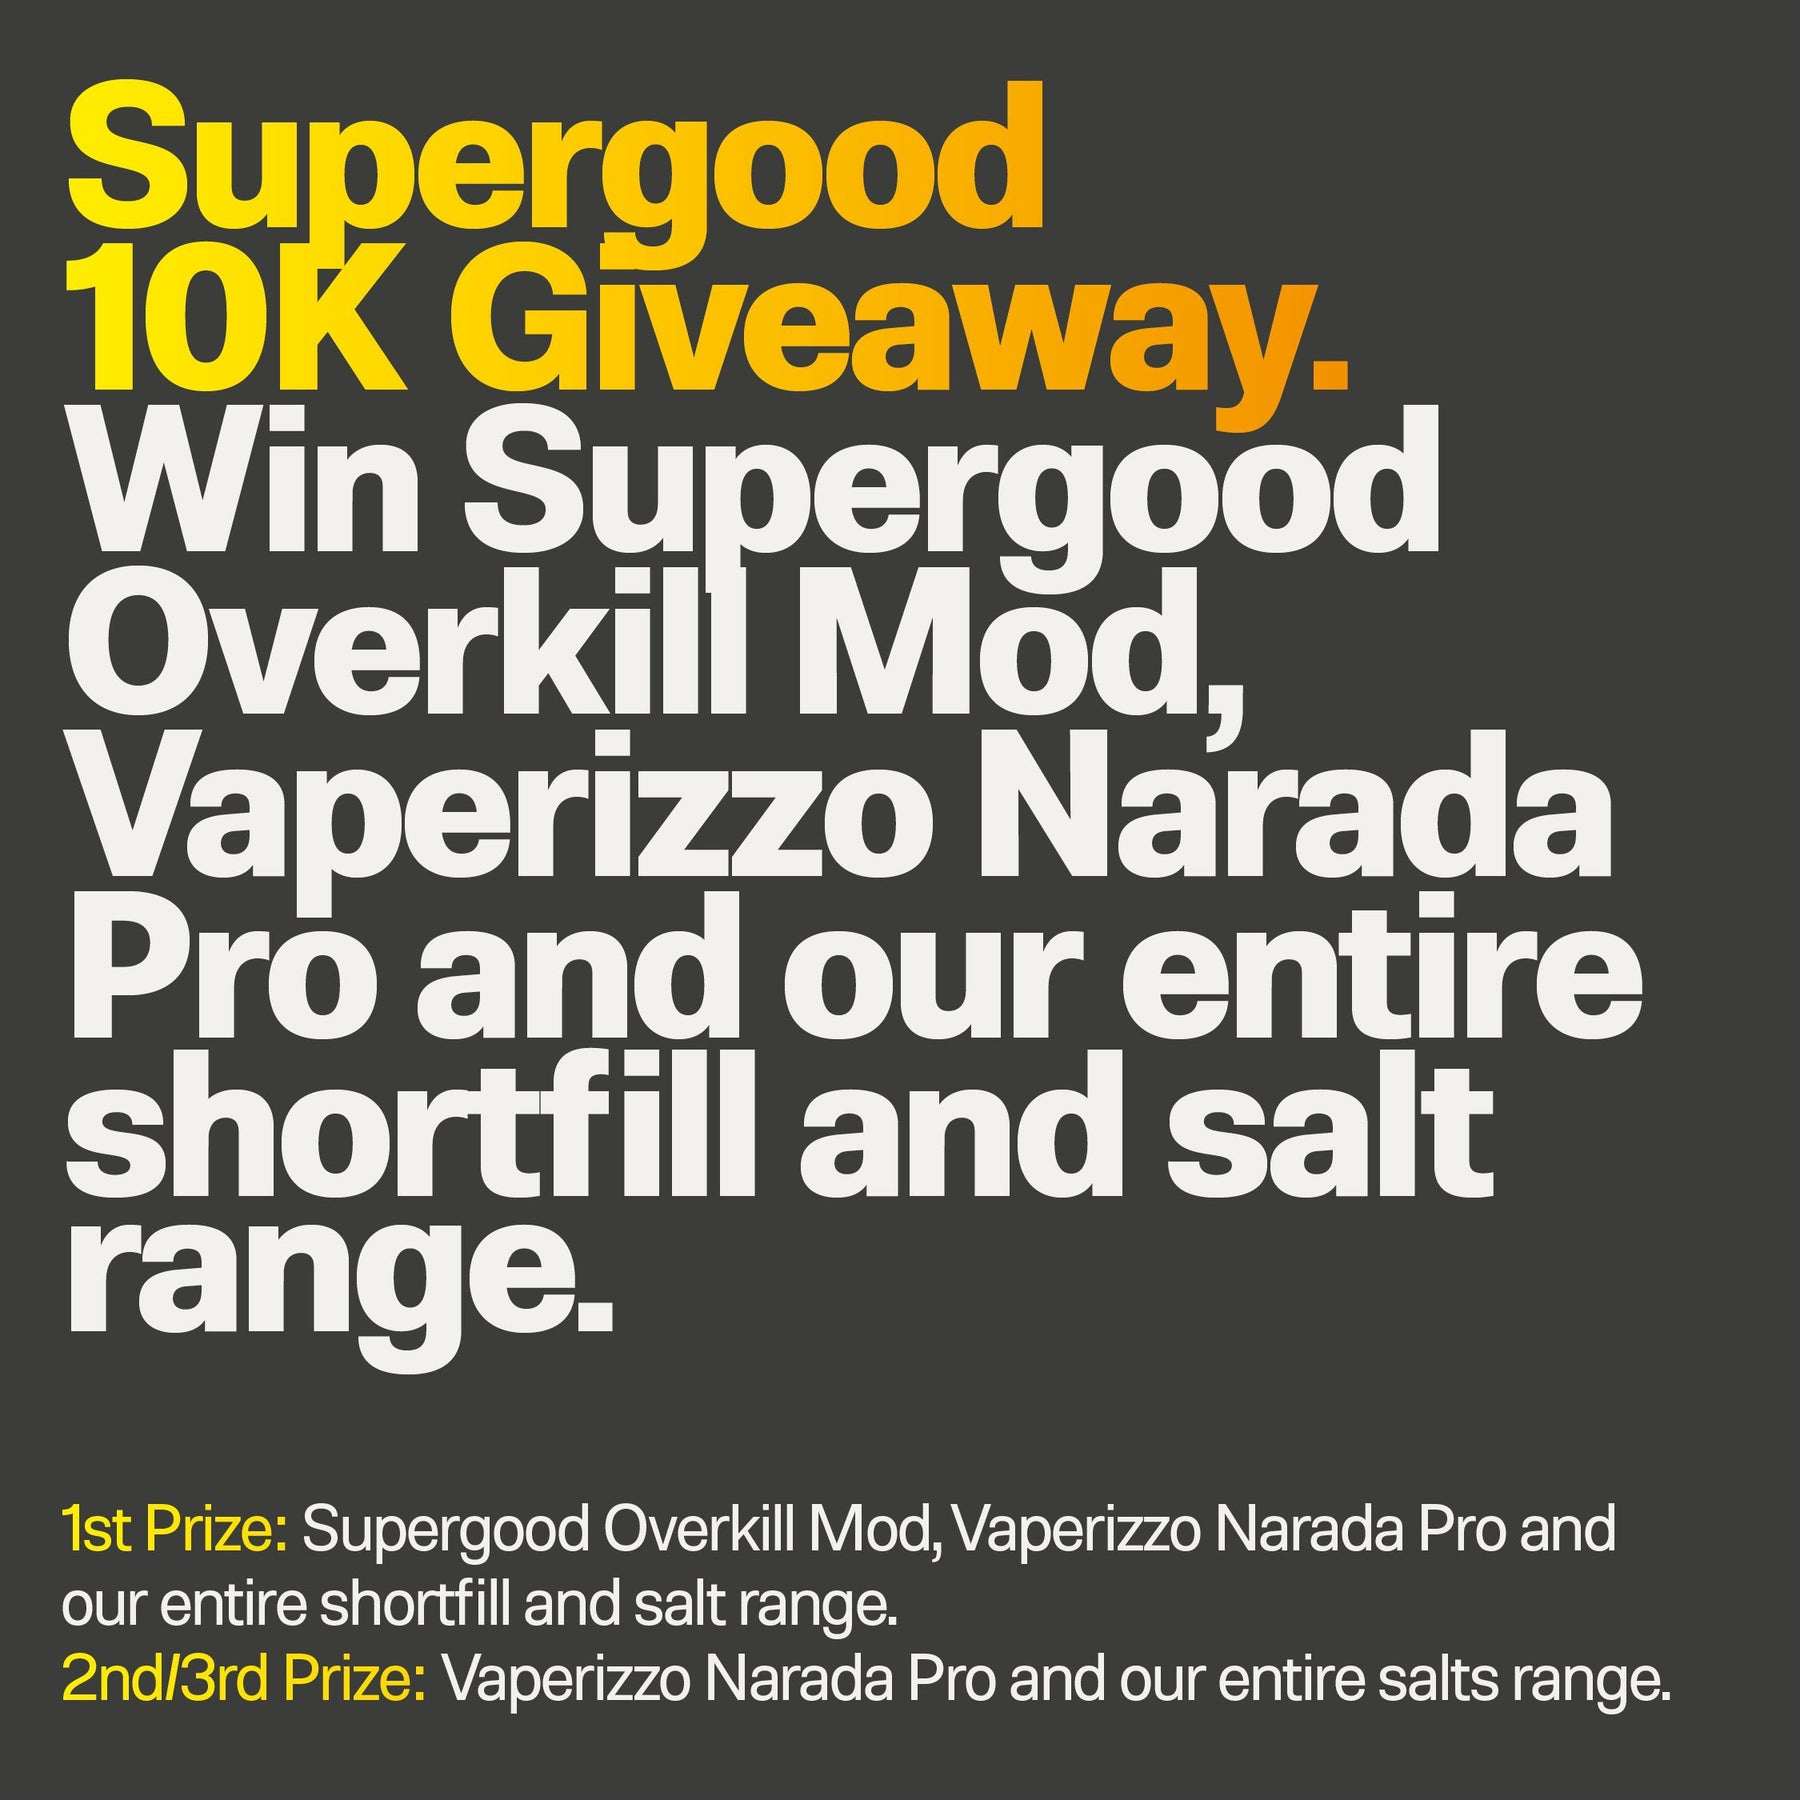 News-10k Giveaway | We Are Supergood.